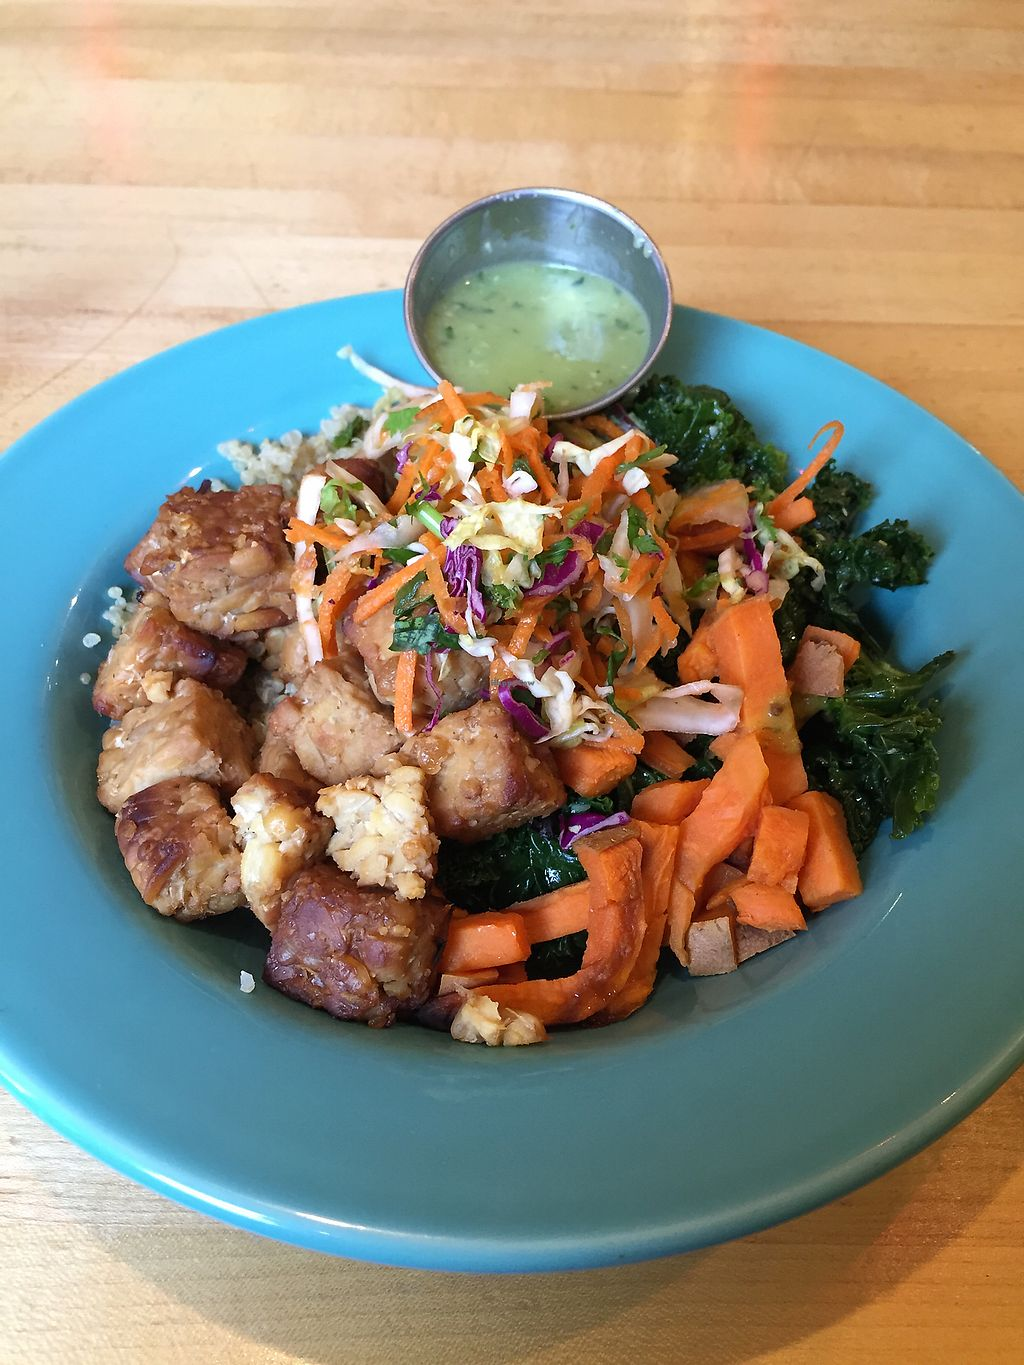 """Photo of Laughing Planet Cafe  by <a href=""""/members/profile/LinnDaugherty"""">LinnDaugherty</a> <br/>harvest bowl $9 <br/> June 26, 2017  - <a href='/contact/abuse/image/58981/273469'>Report</a>"""